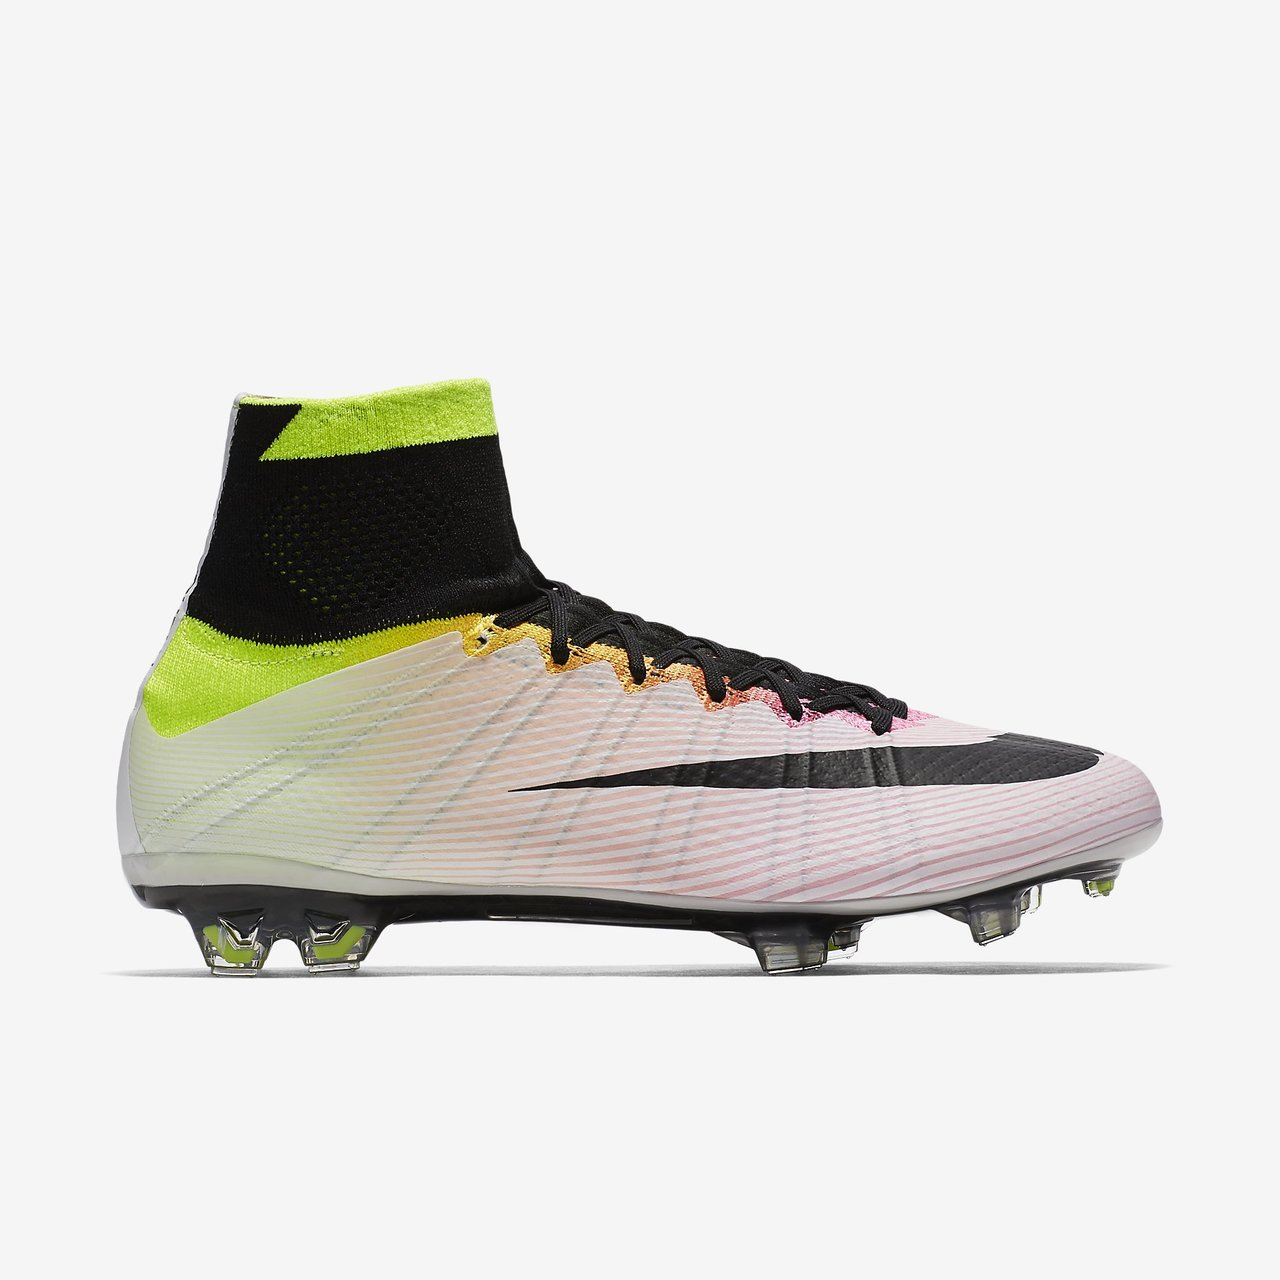 98ca760eb coupon nike mercurial superfly fg white black volt total orange 898c0  1f654  aliexpress click to enlarge image nike mercurial superfly fg radiant  reveal ...